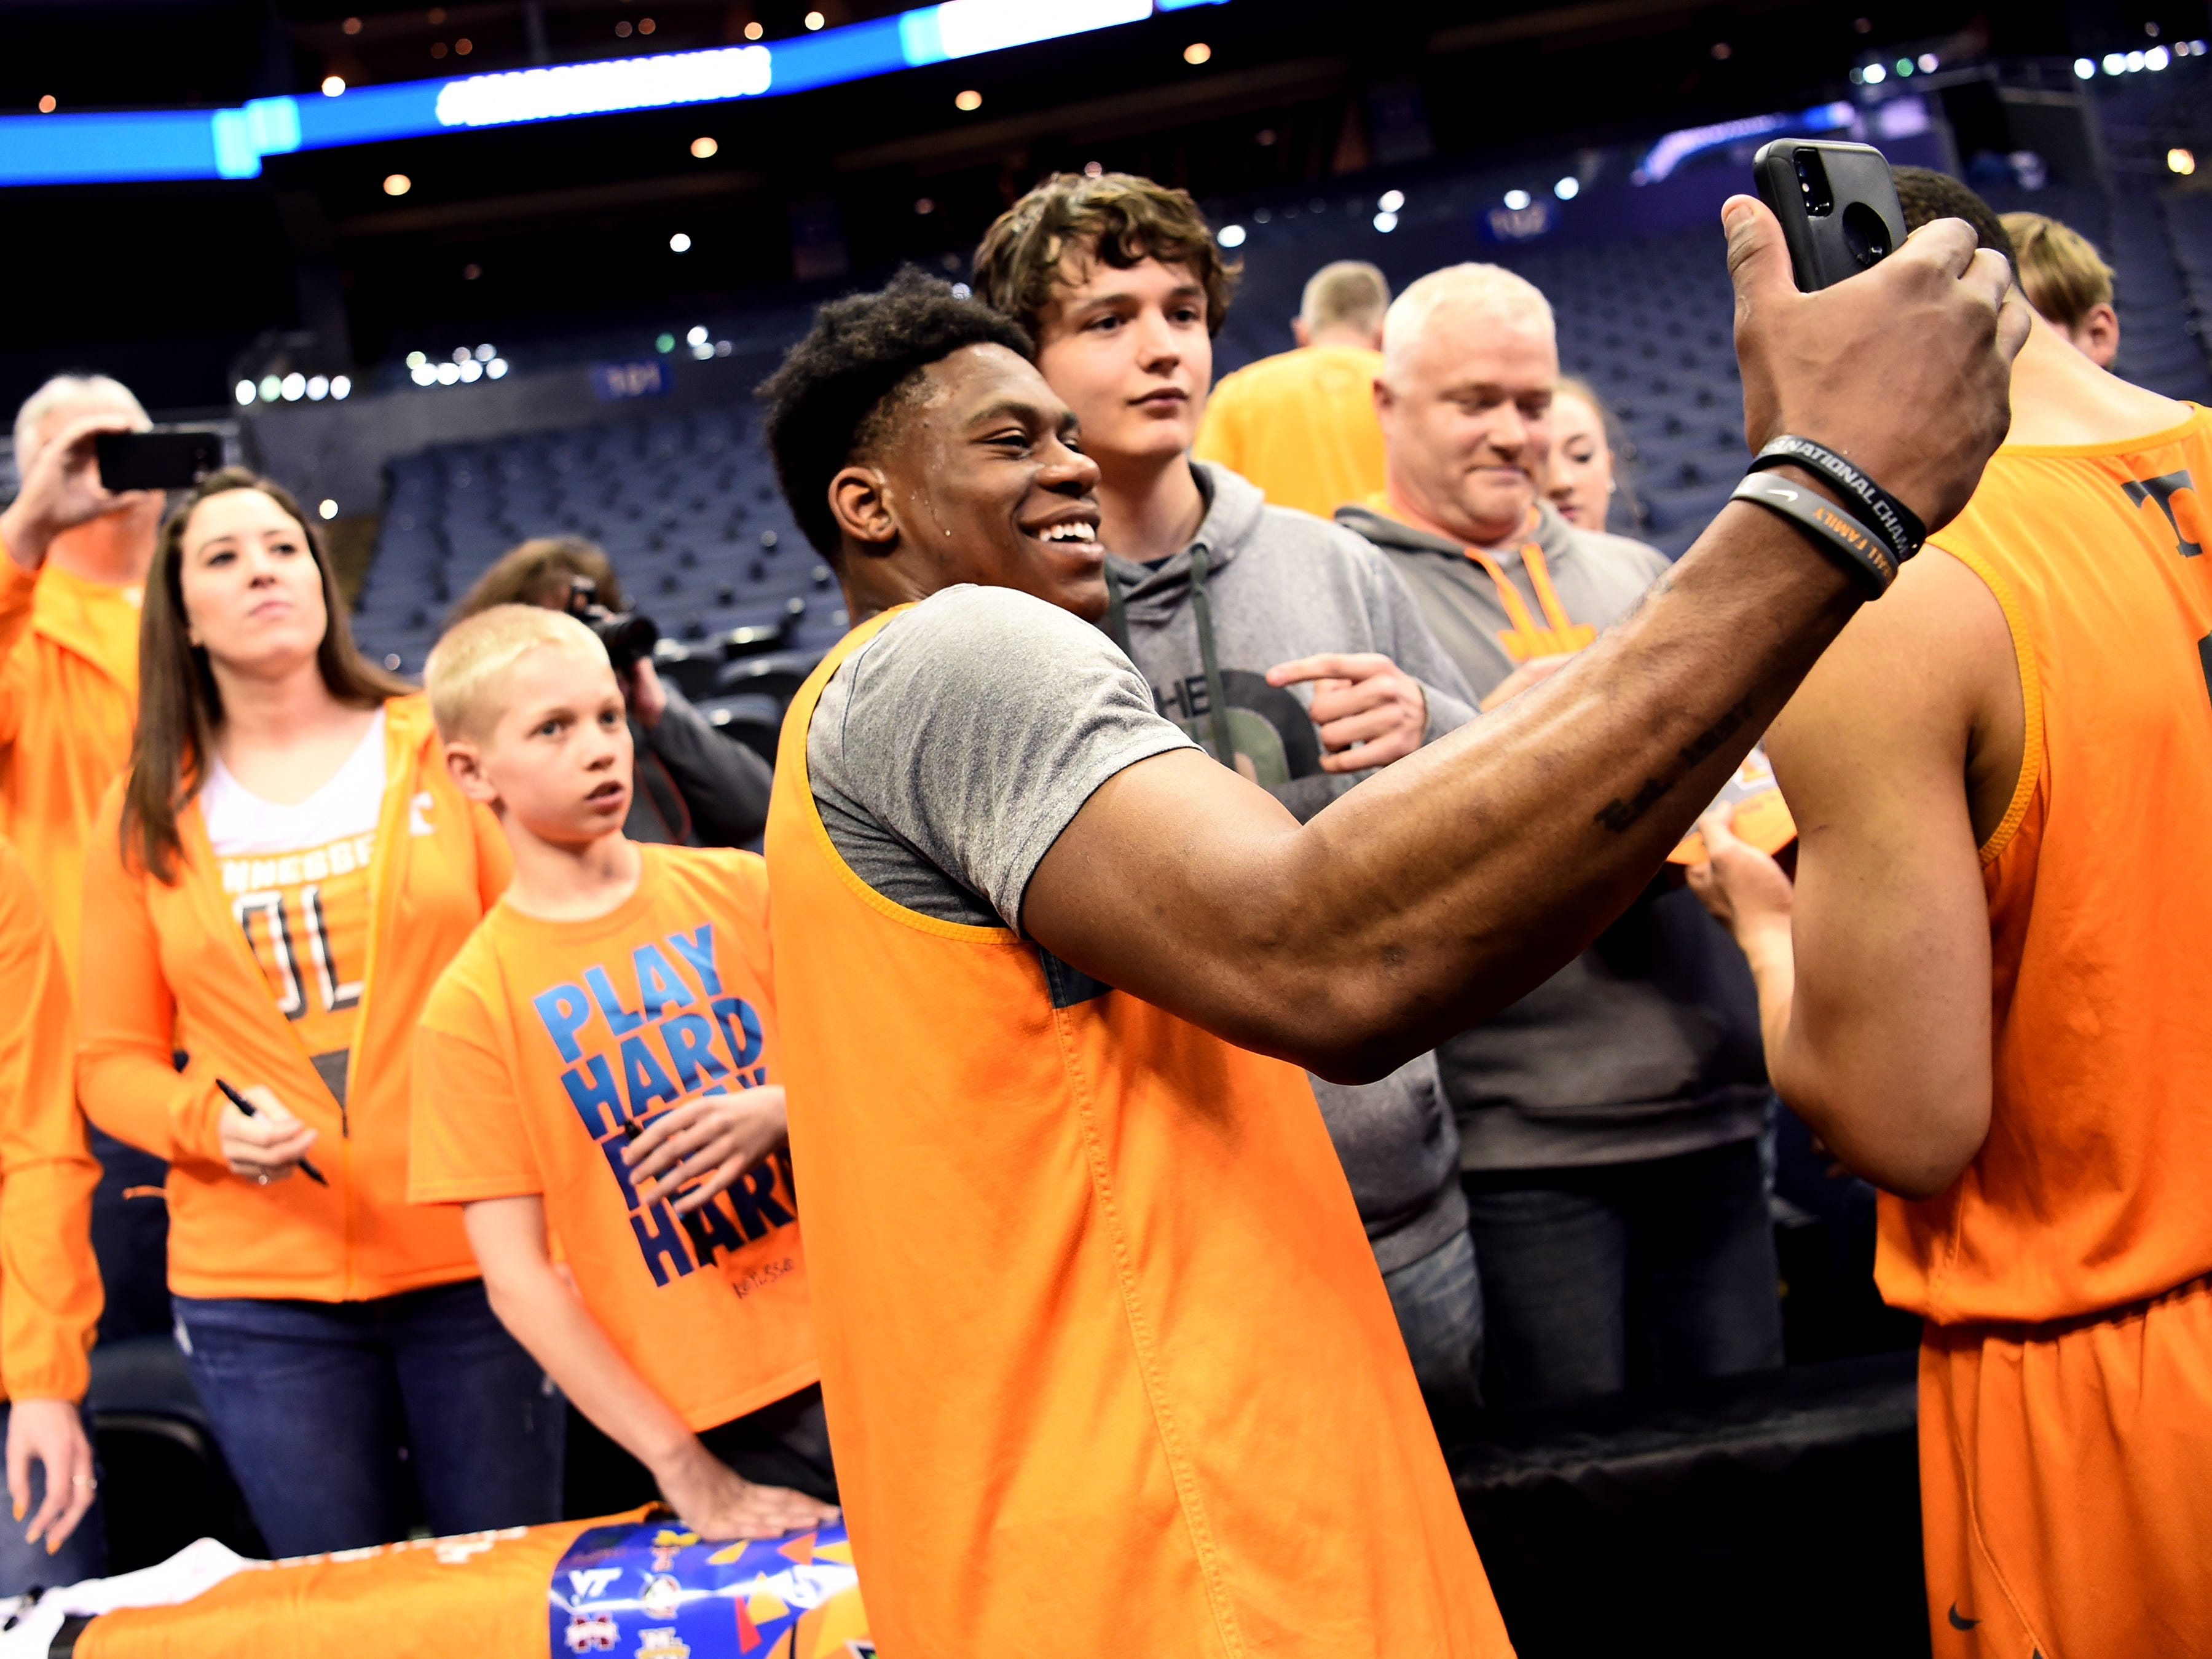 Tennessee guard Admiral Schofield (5) takes a selfie with a fan after Tennessee's practice on Thursday, March 21, 2019, before their first round NCAA Tournament game against Colgate at Nationwide Arena in Columbus, Ohio.